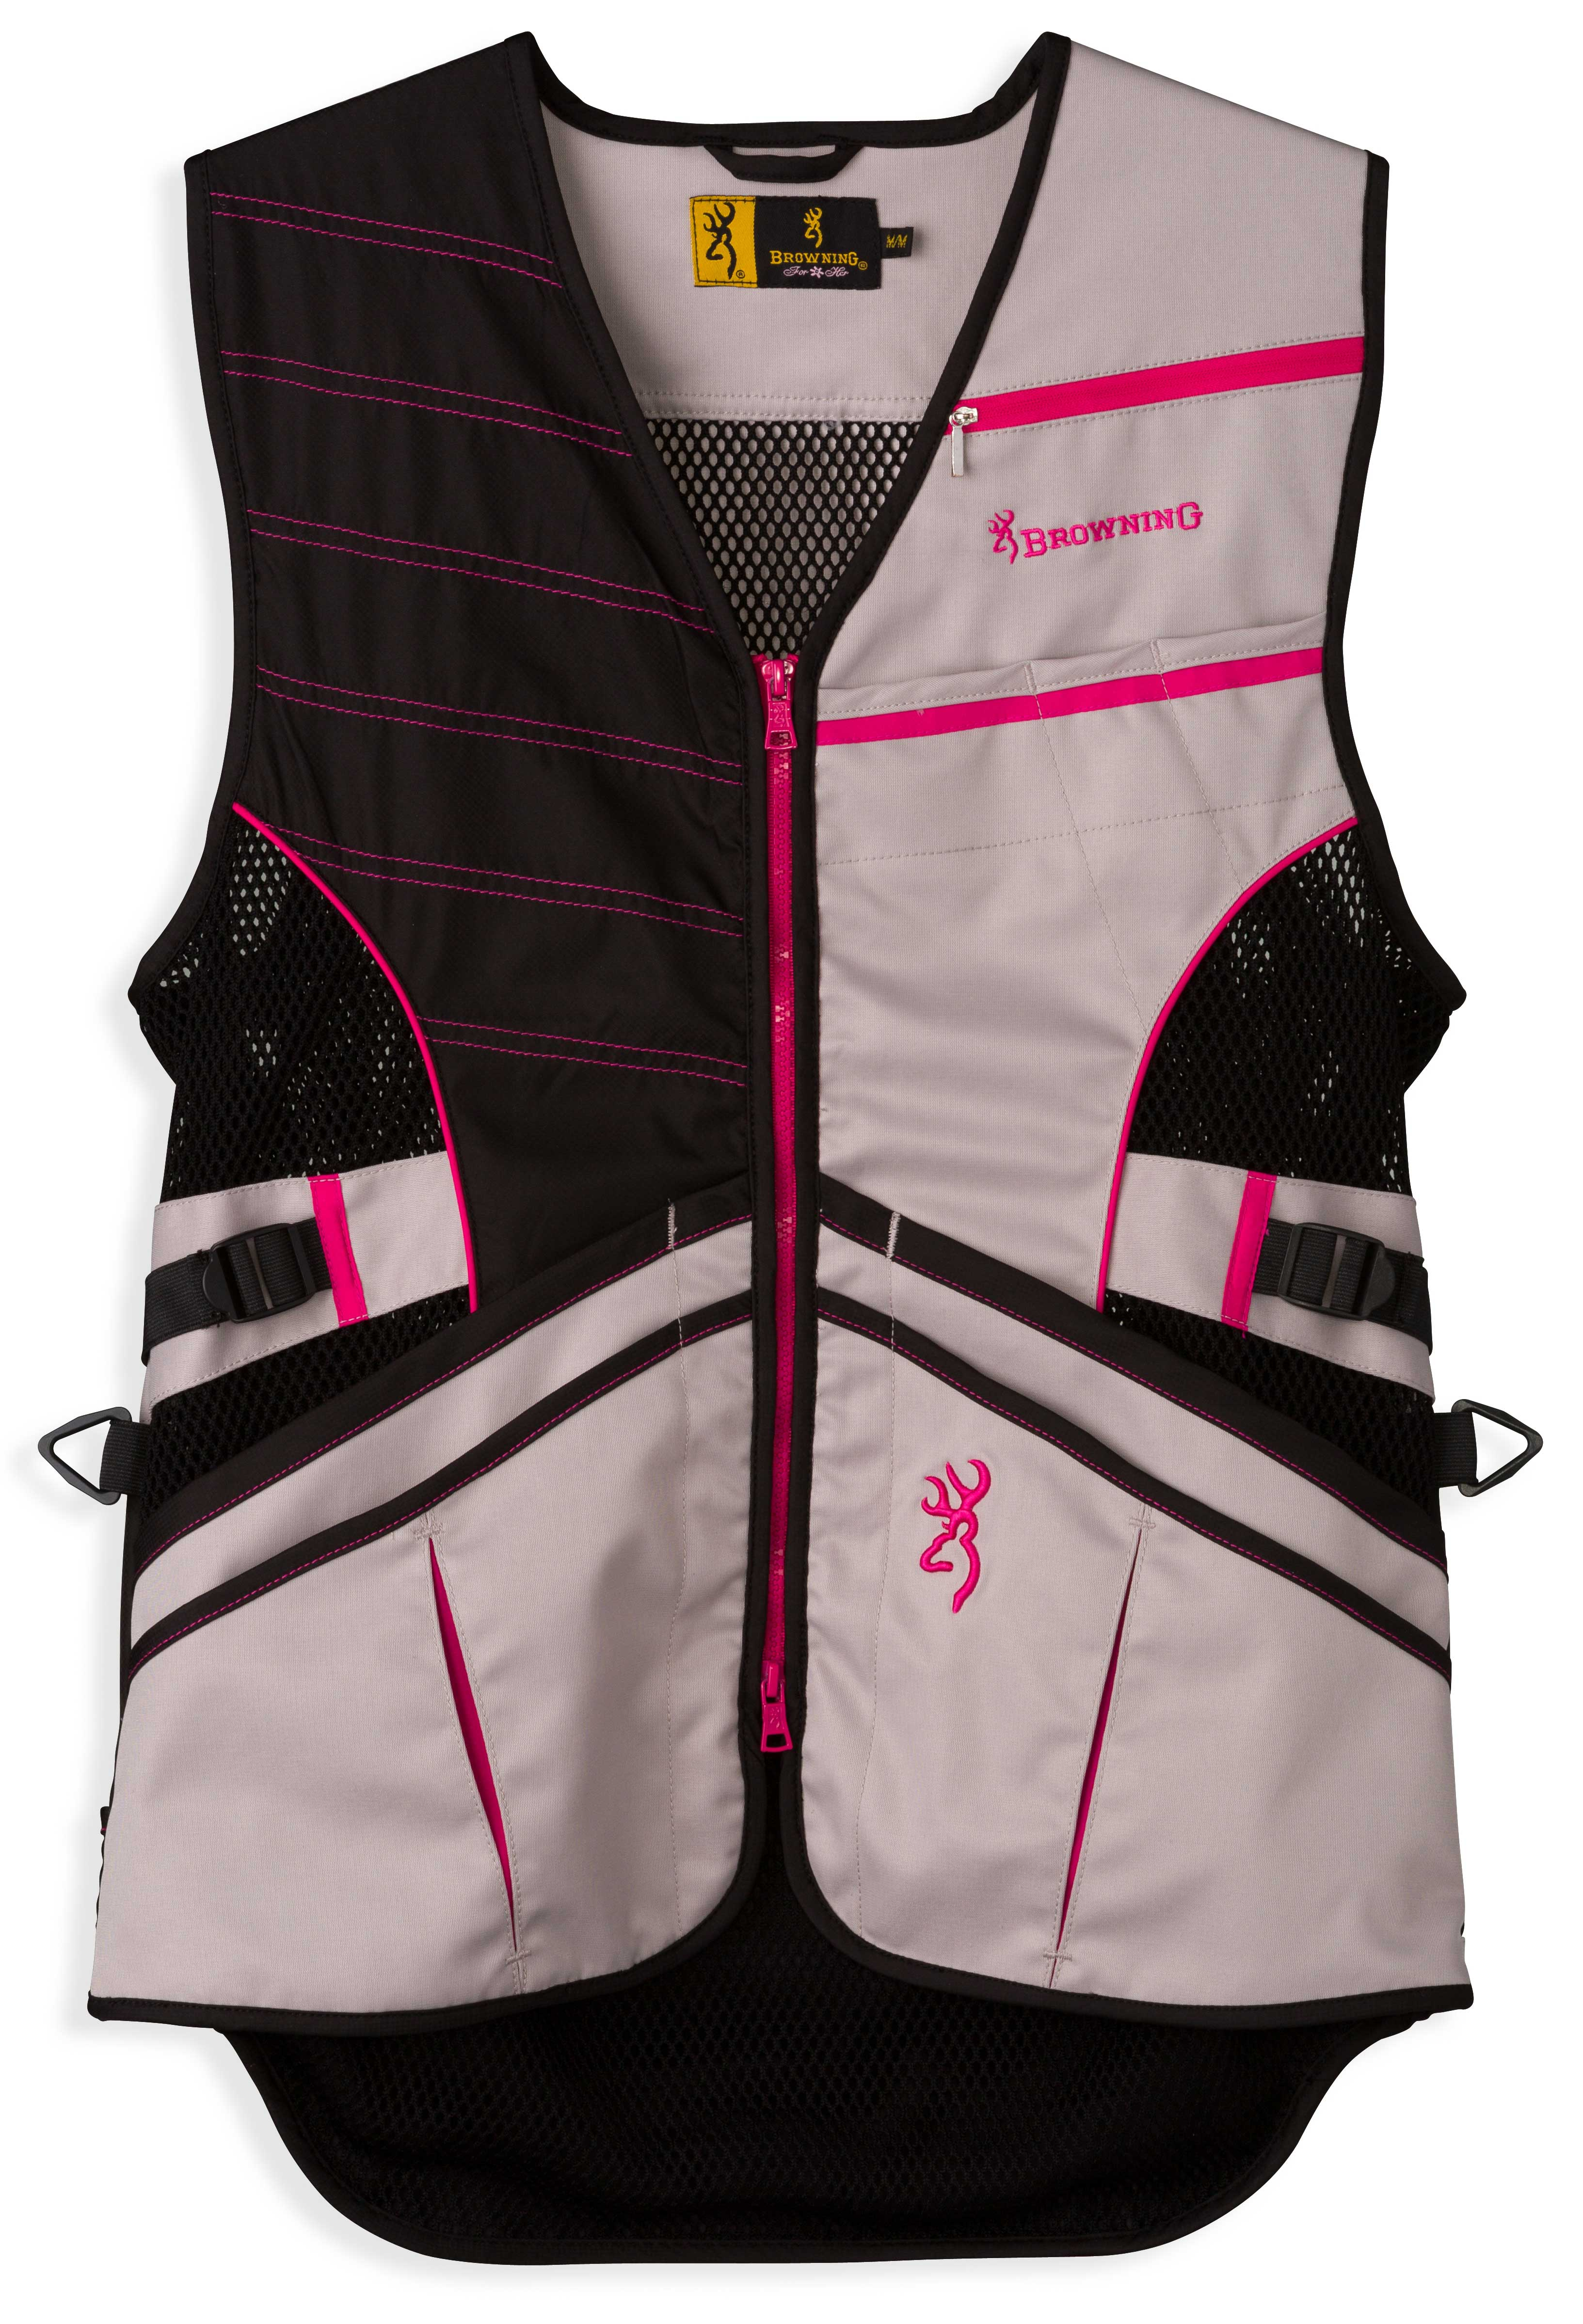 BROWNING Women's Ace Shooting Vest thumbnail